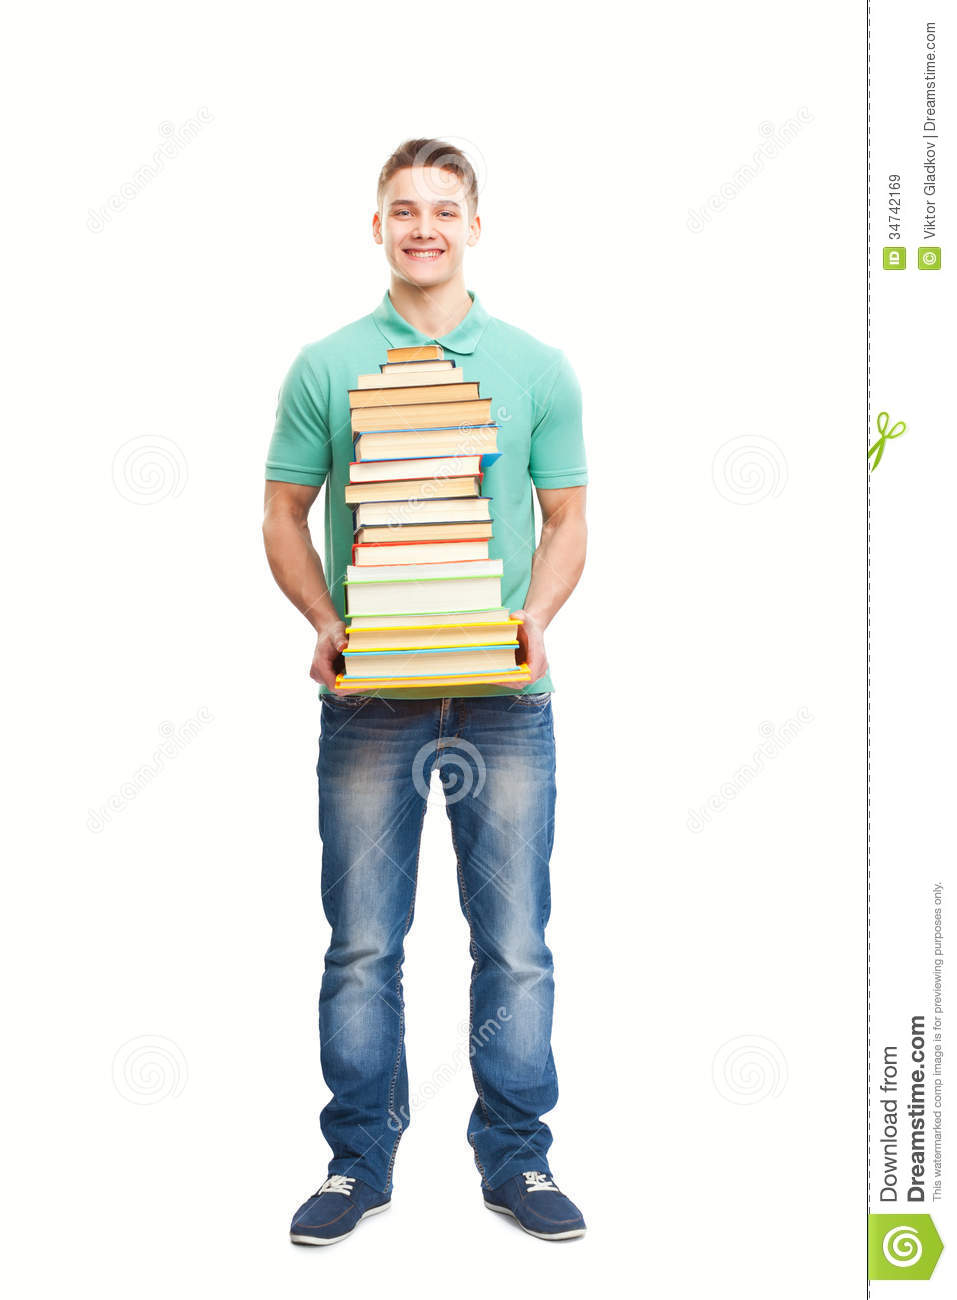 Smiling student holding big stack of books